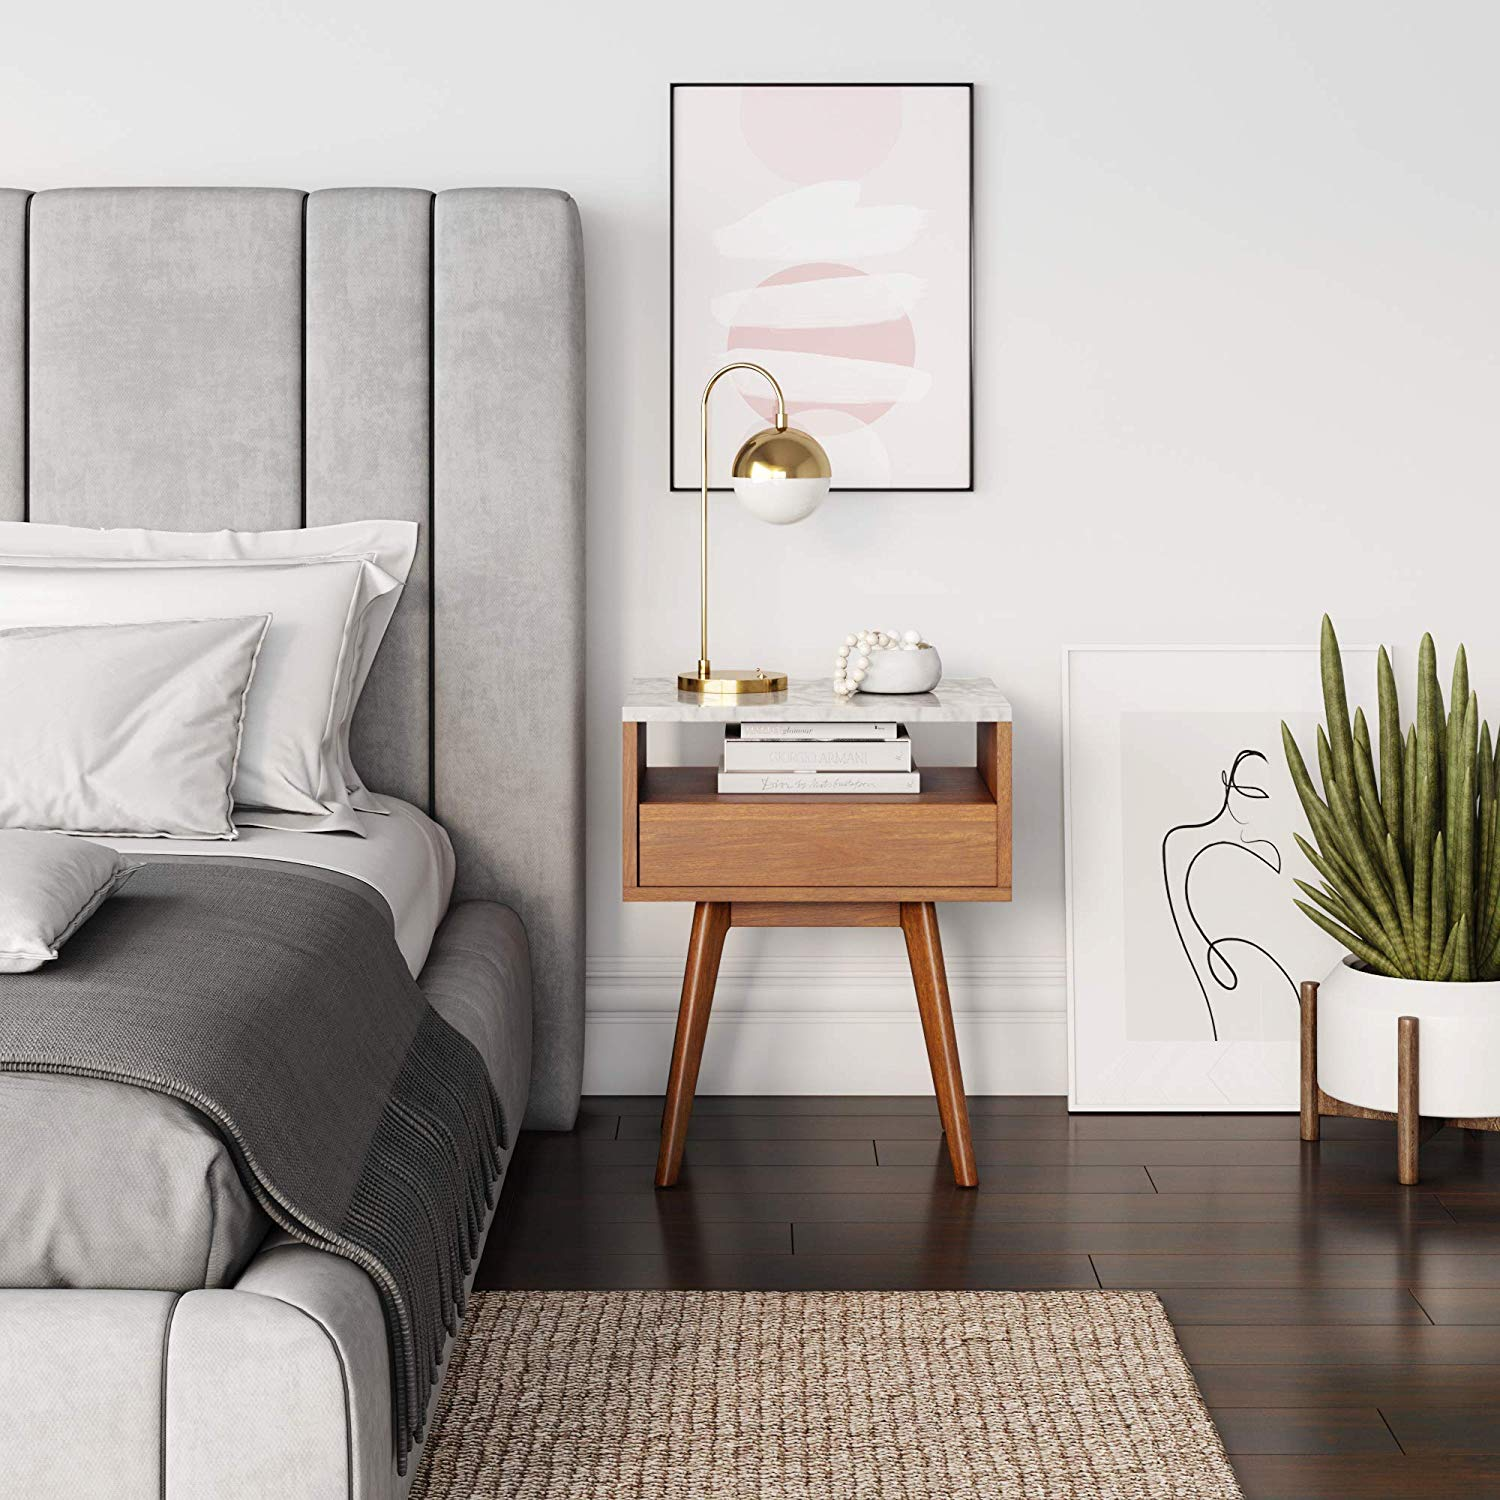 5 Bedside Tables that Blend Convenience and Style in the Bedroom